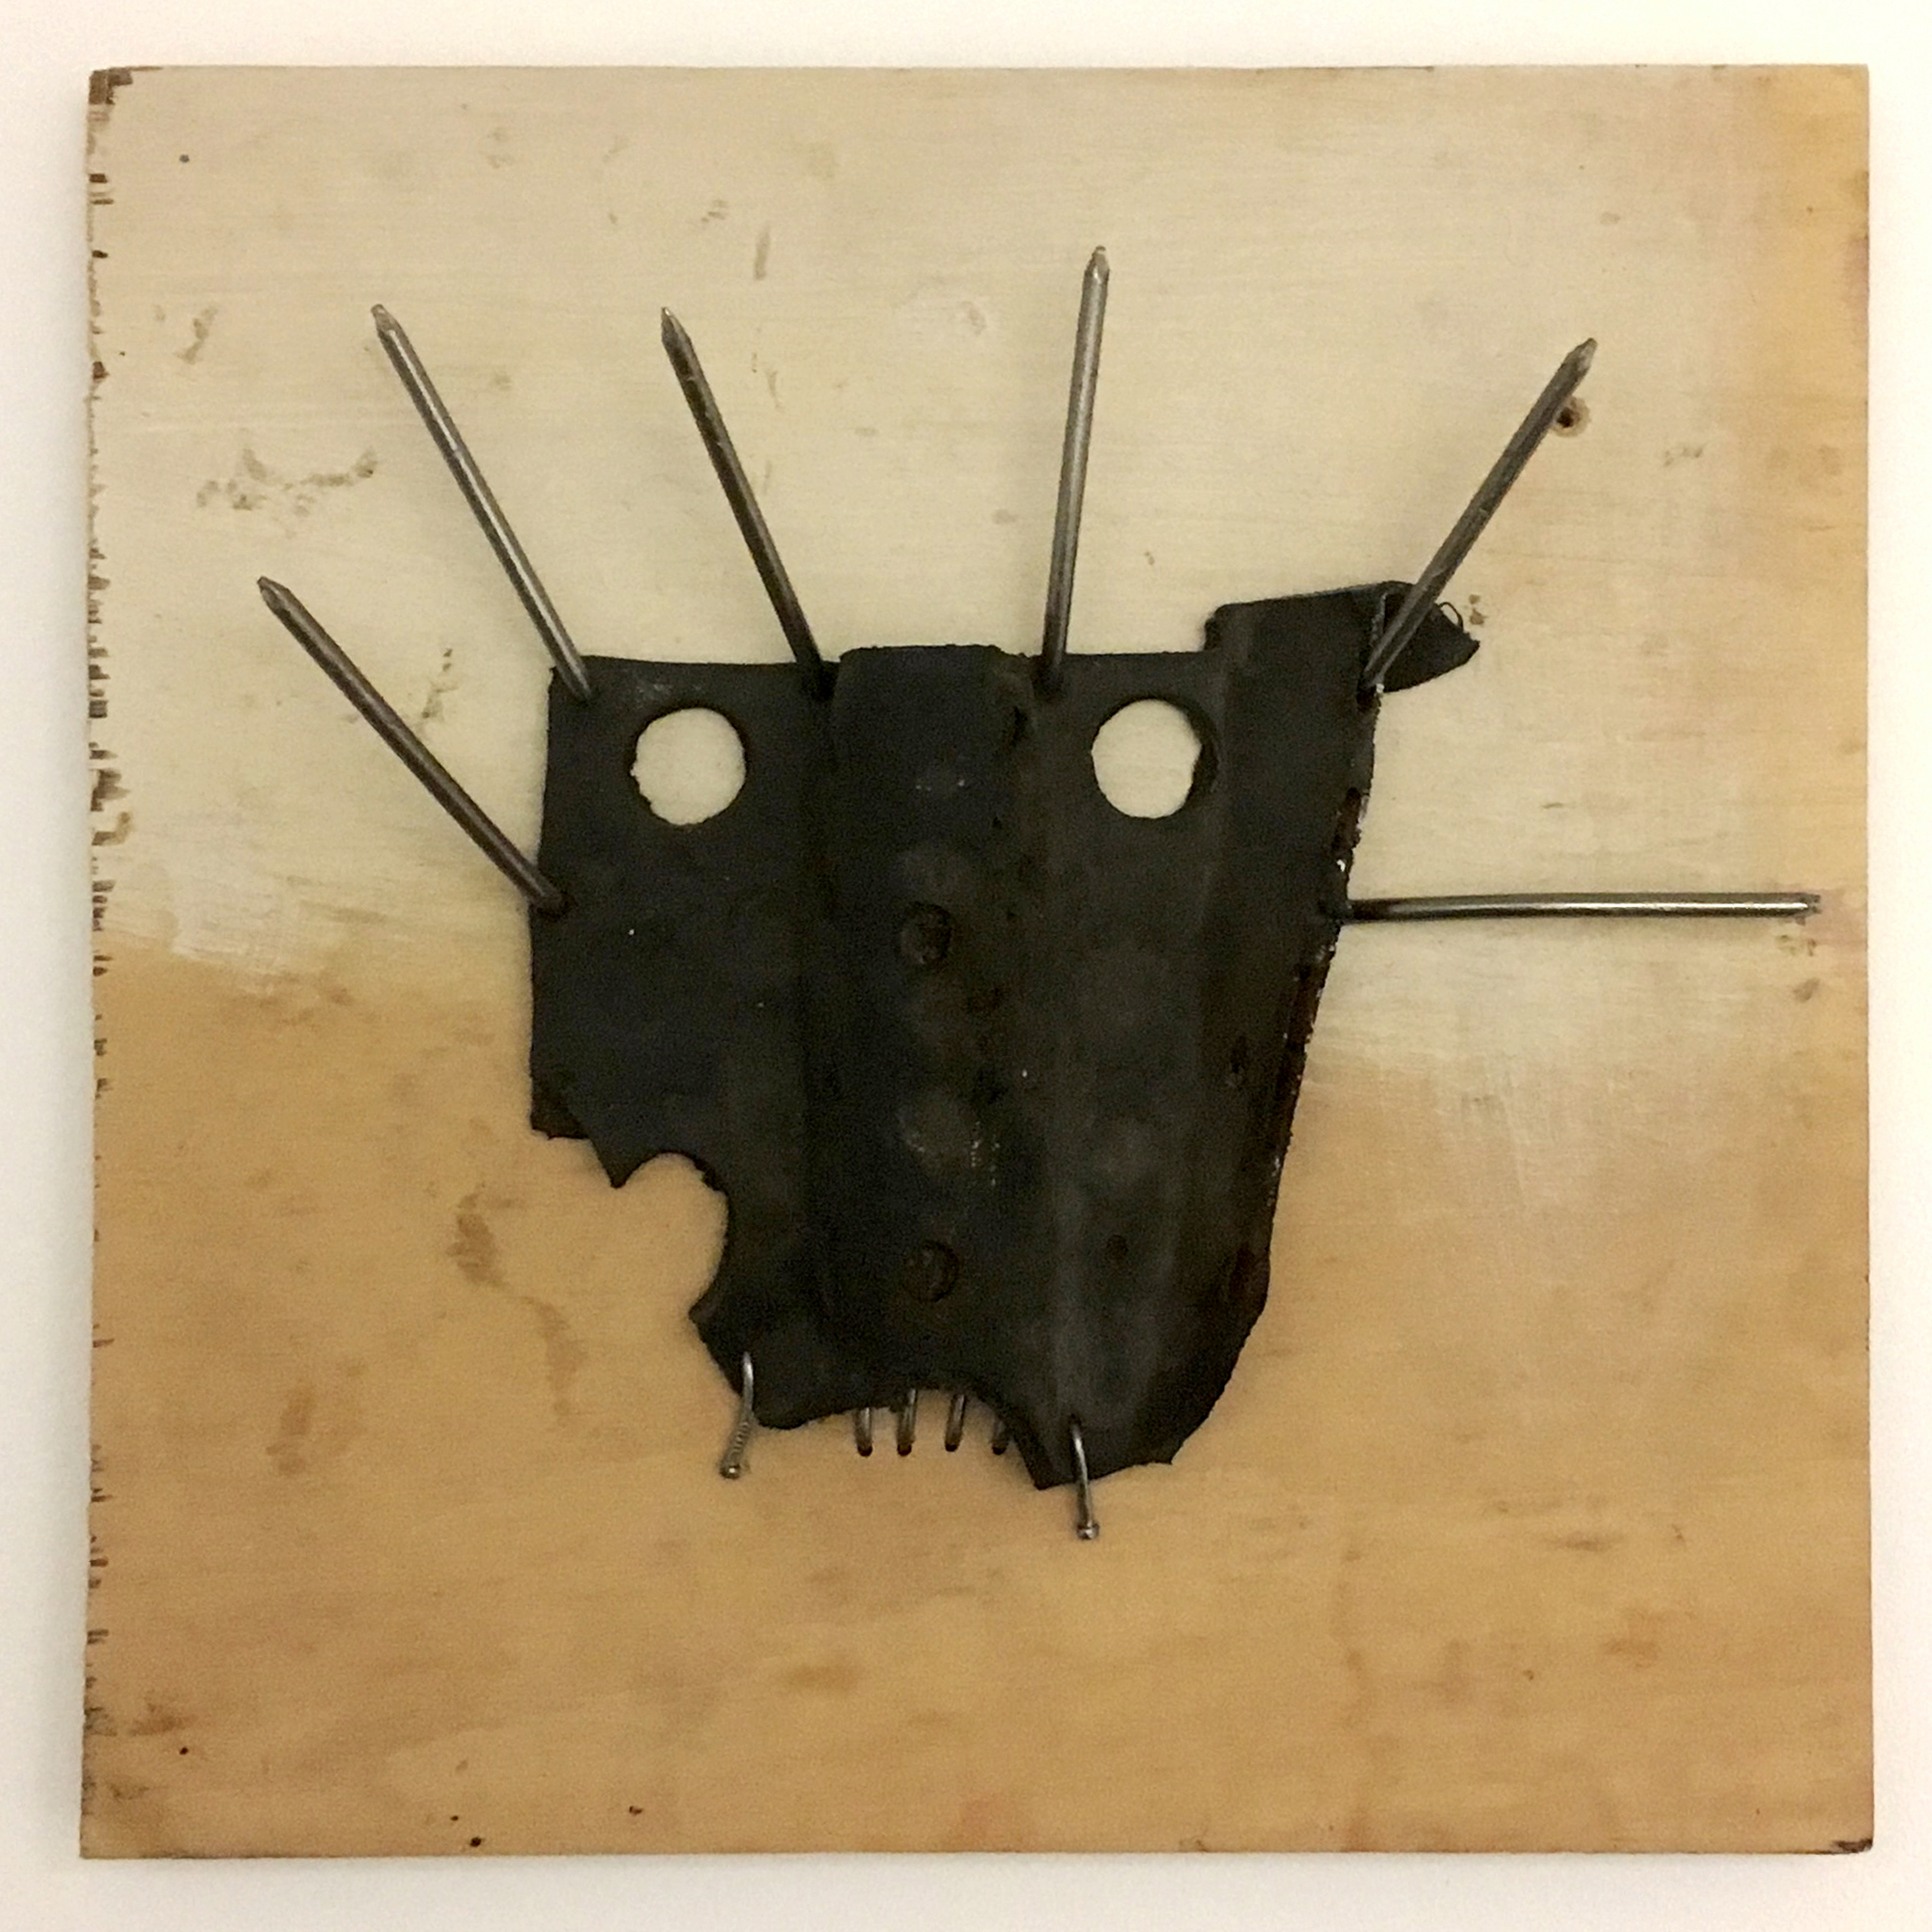 David Harrison: Playtime (2004) Found objects on wood, 32 x 32.5 cm 12 5/8 x 12 3/4 in